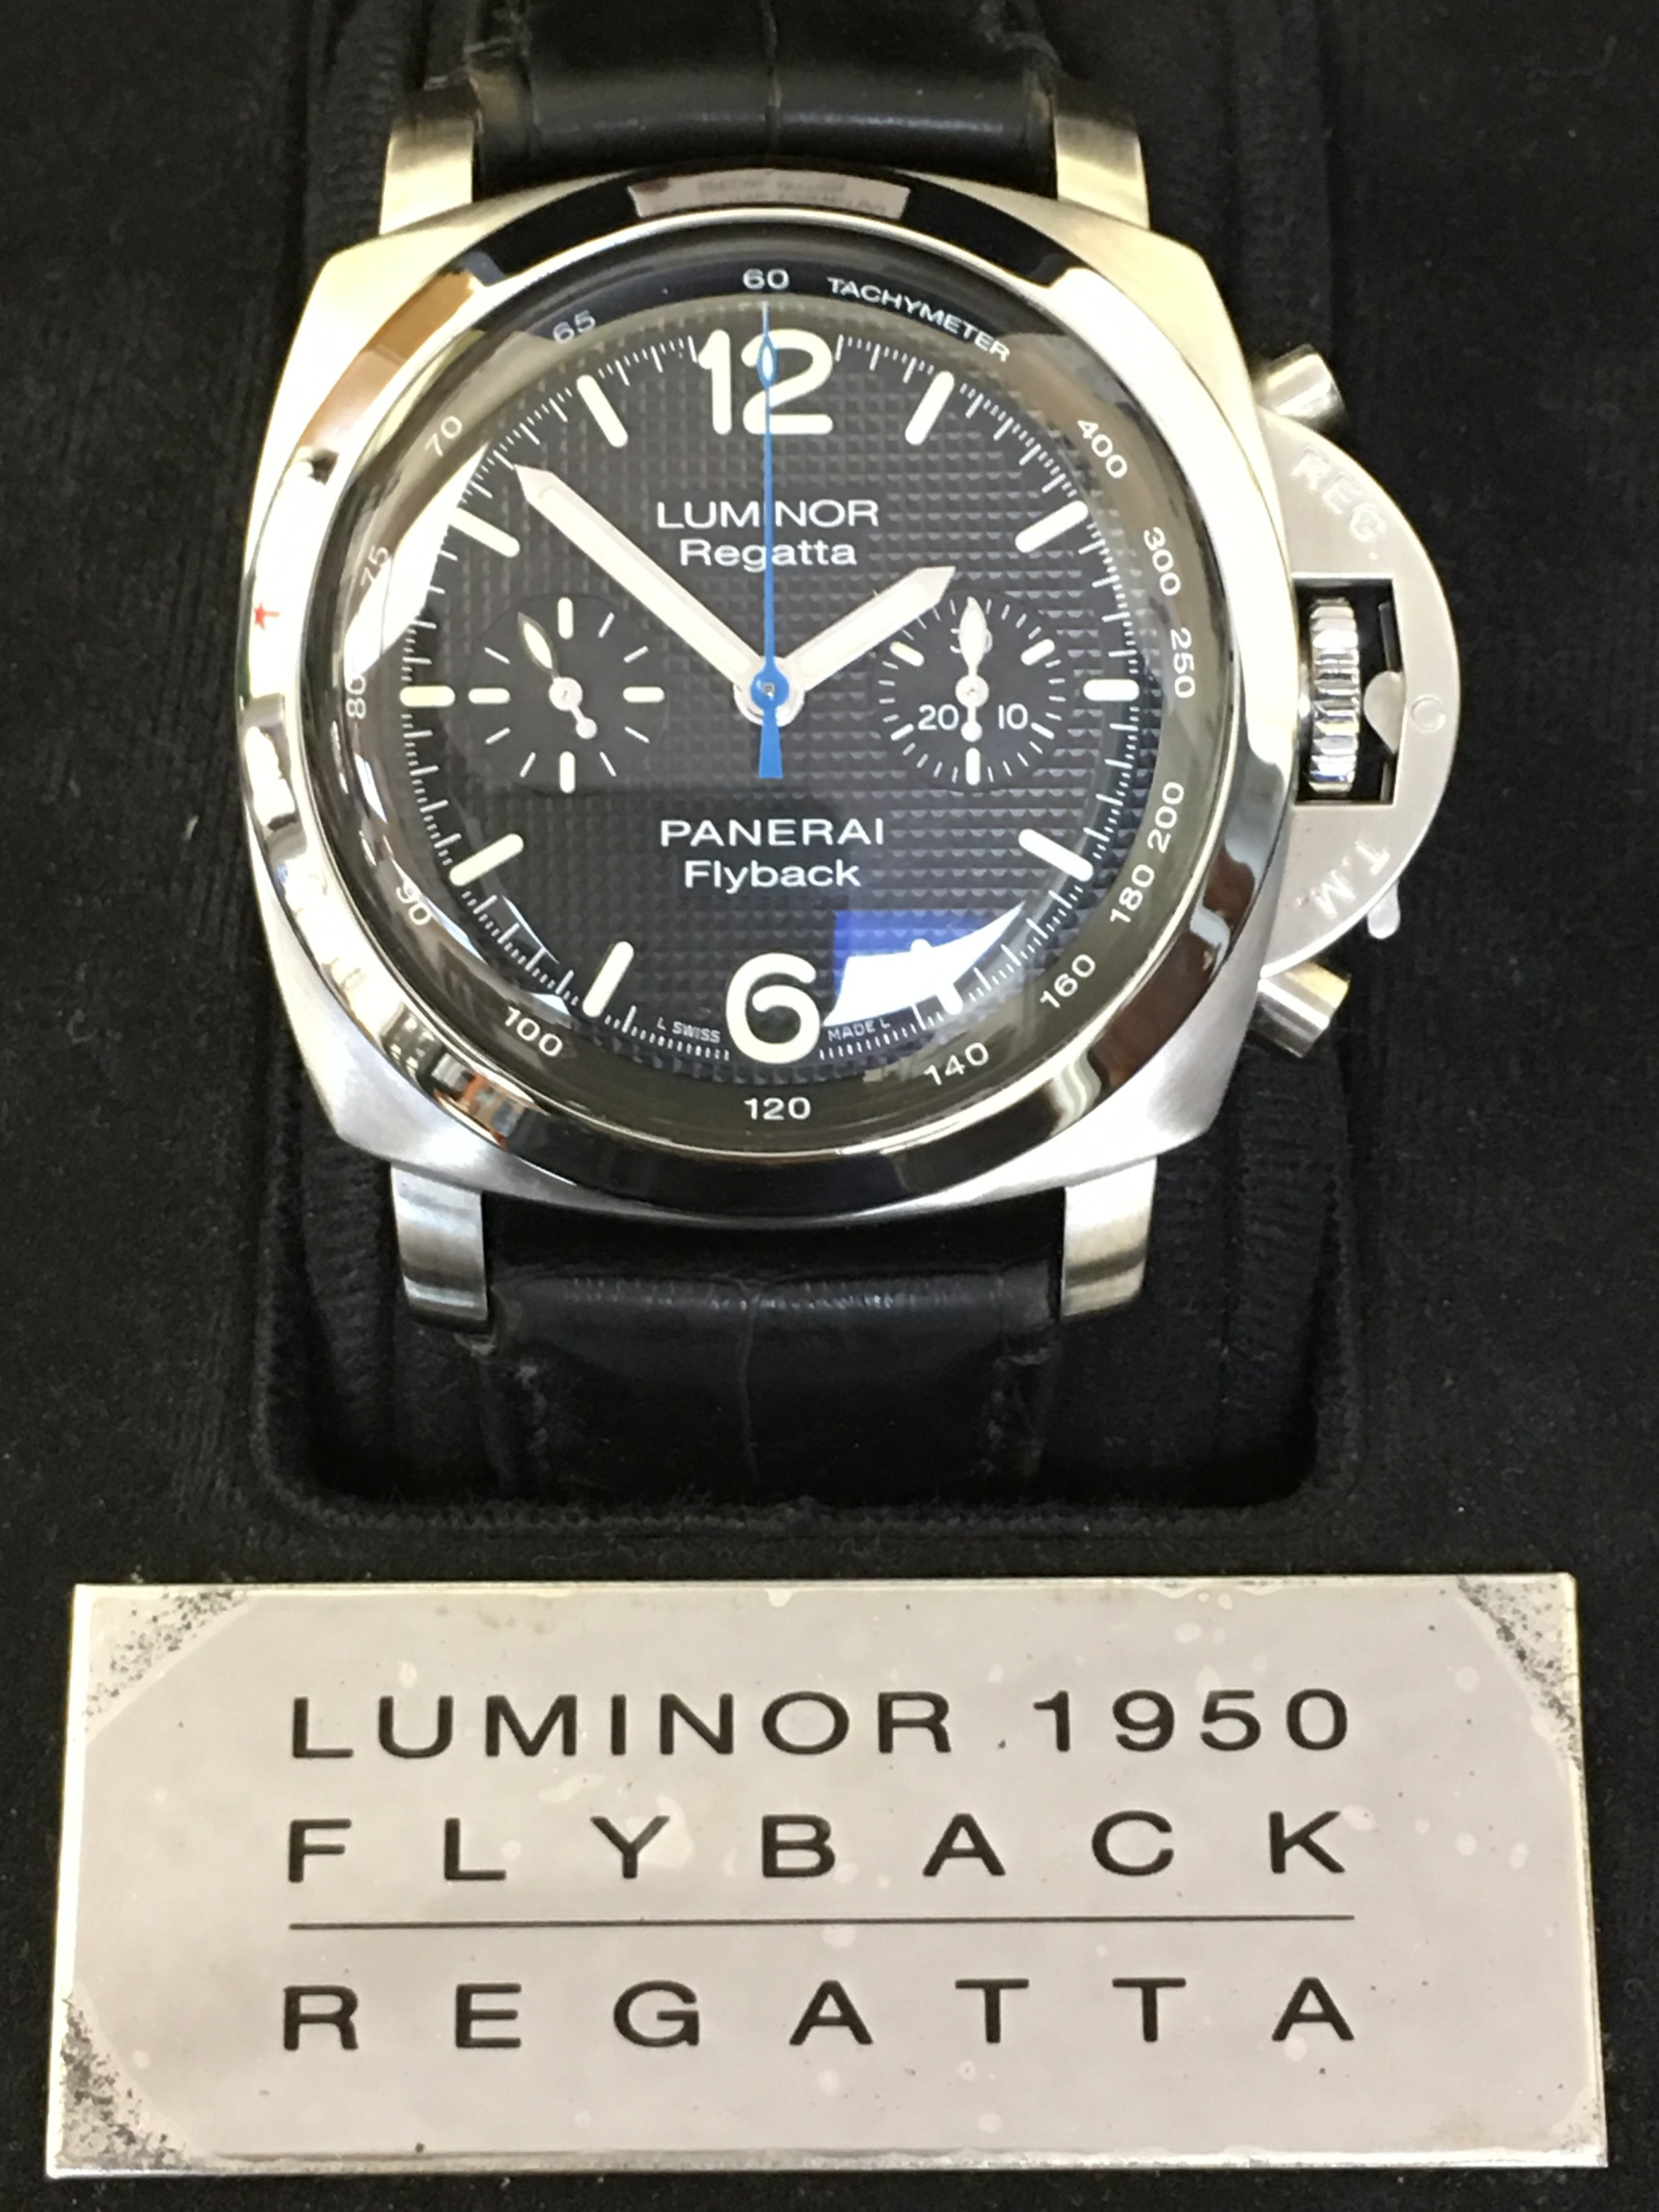 Watch Luminor Regatta Panerai Flyback . Tampa Jewelry Store Watch Repair